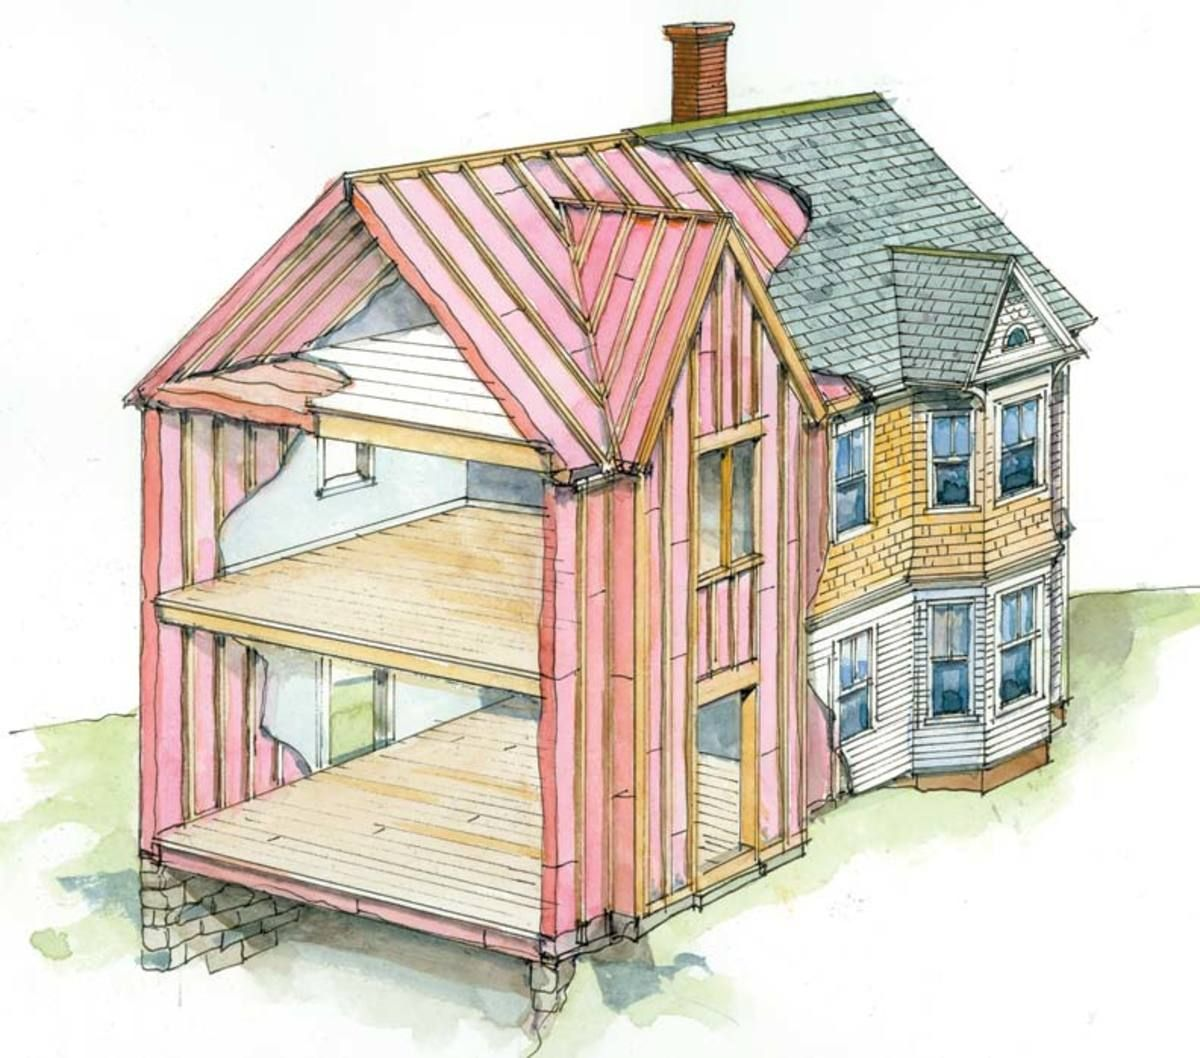 7 Insulation Tips to Save Money & Energy Home insulation